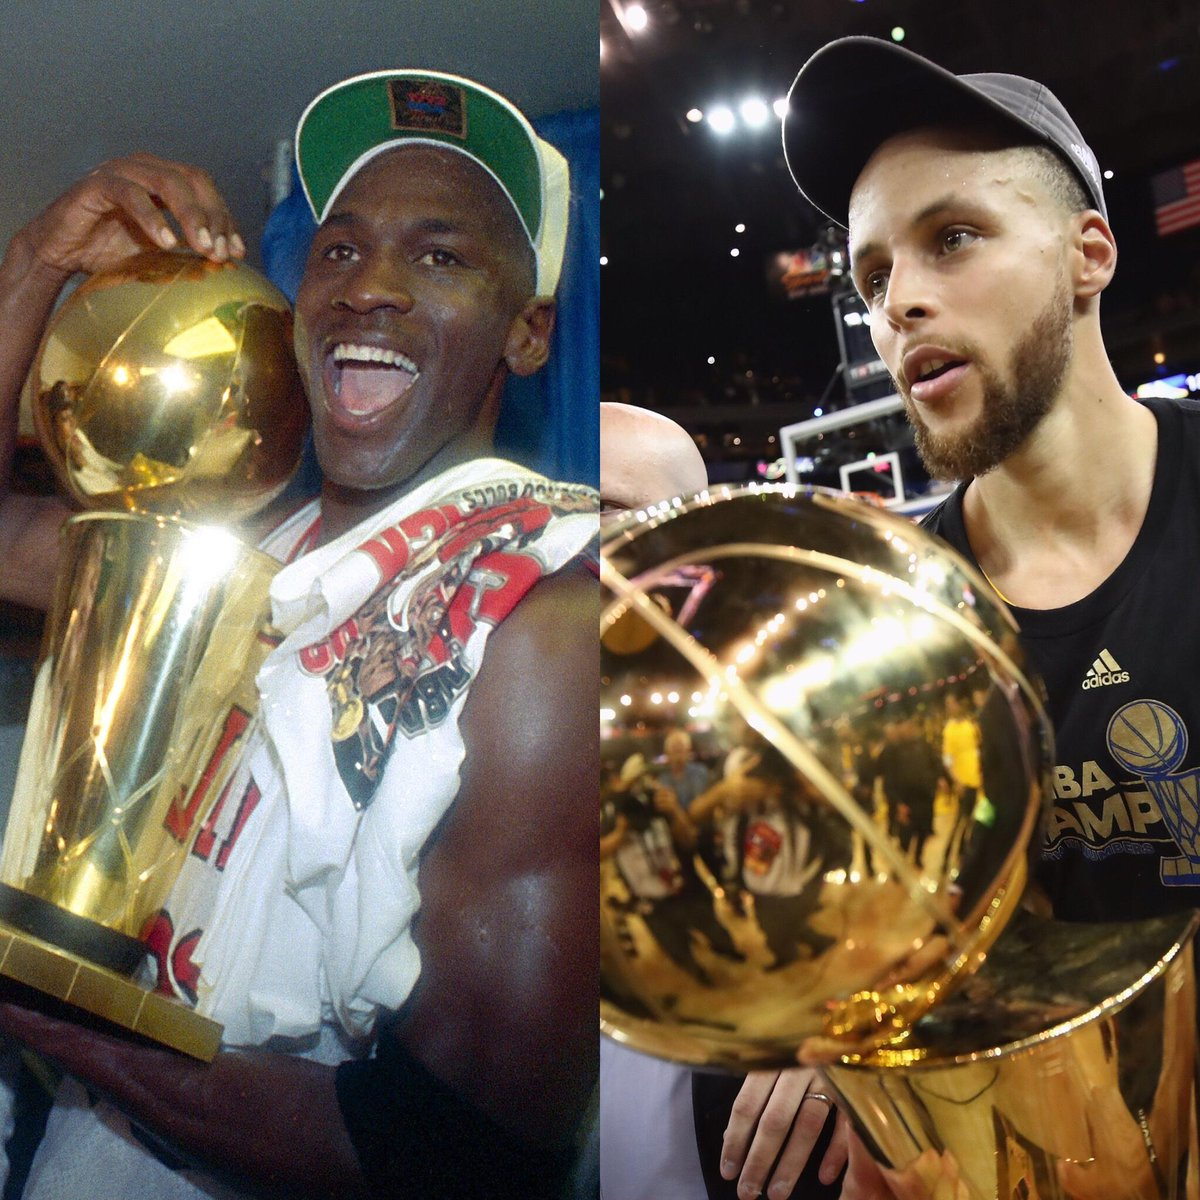 Steph Curry has the same number of NBA championships (2) that Michael Jordan had at age 29.